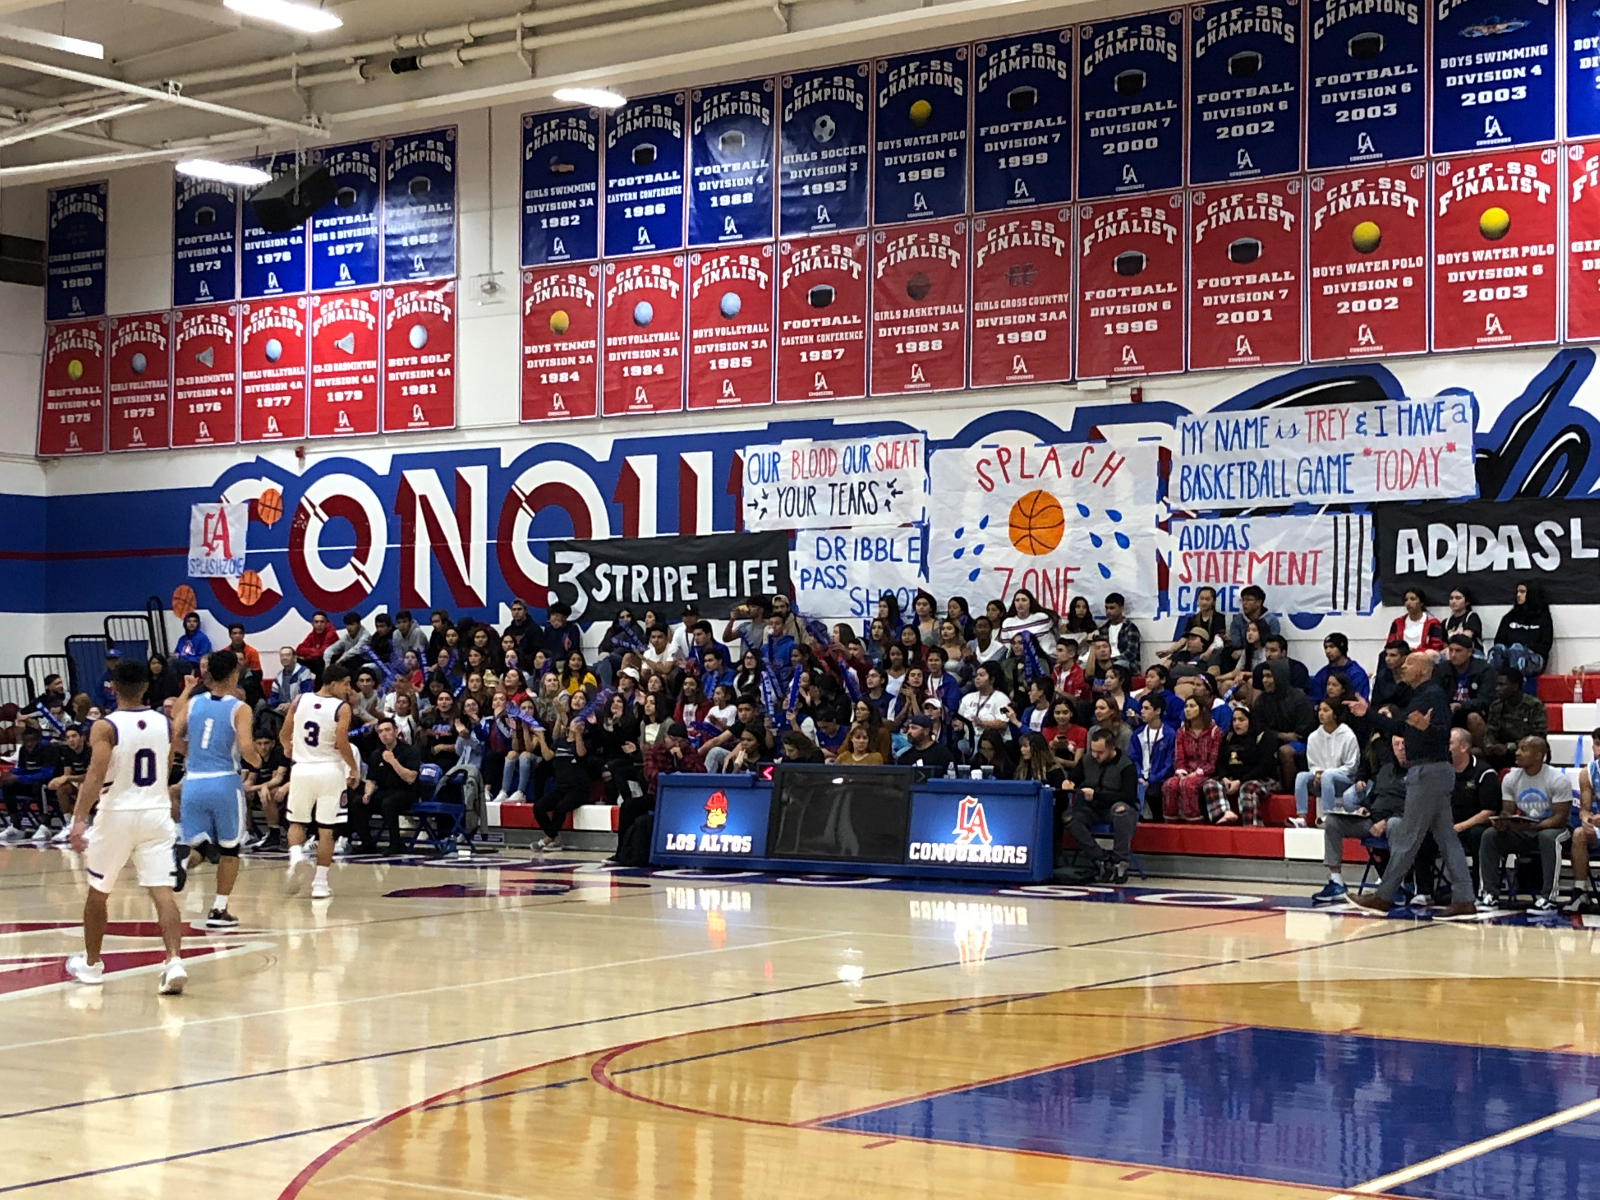 Los Altos Splash Zone Ranked as One of the Top Student Sections